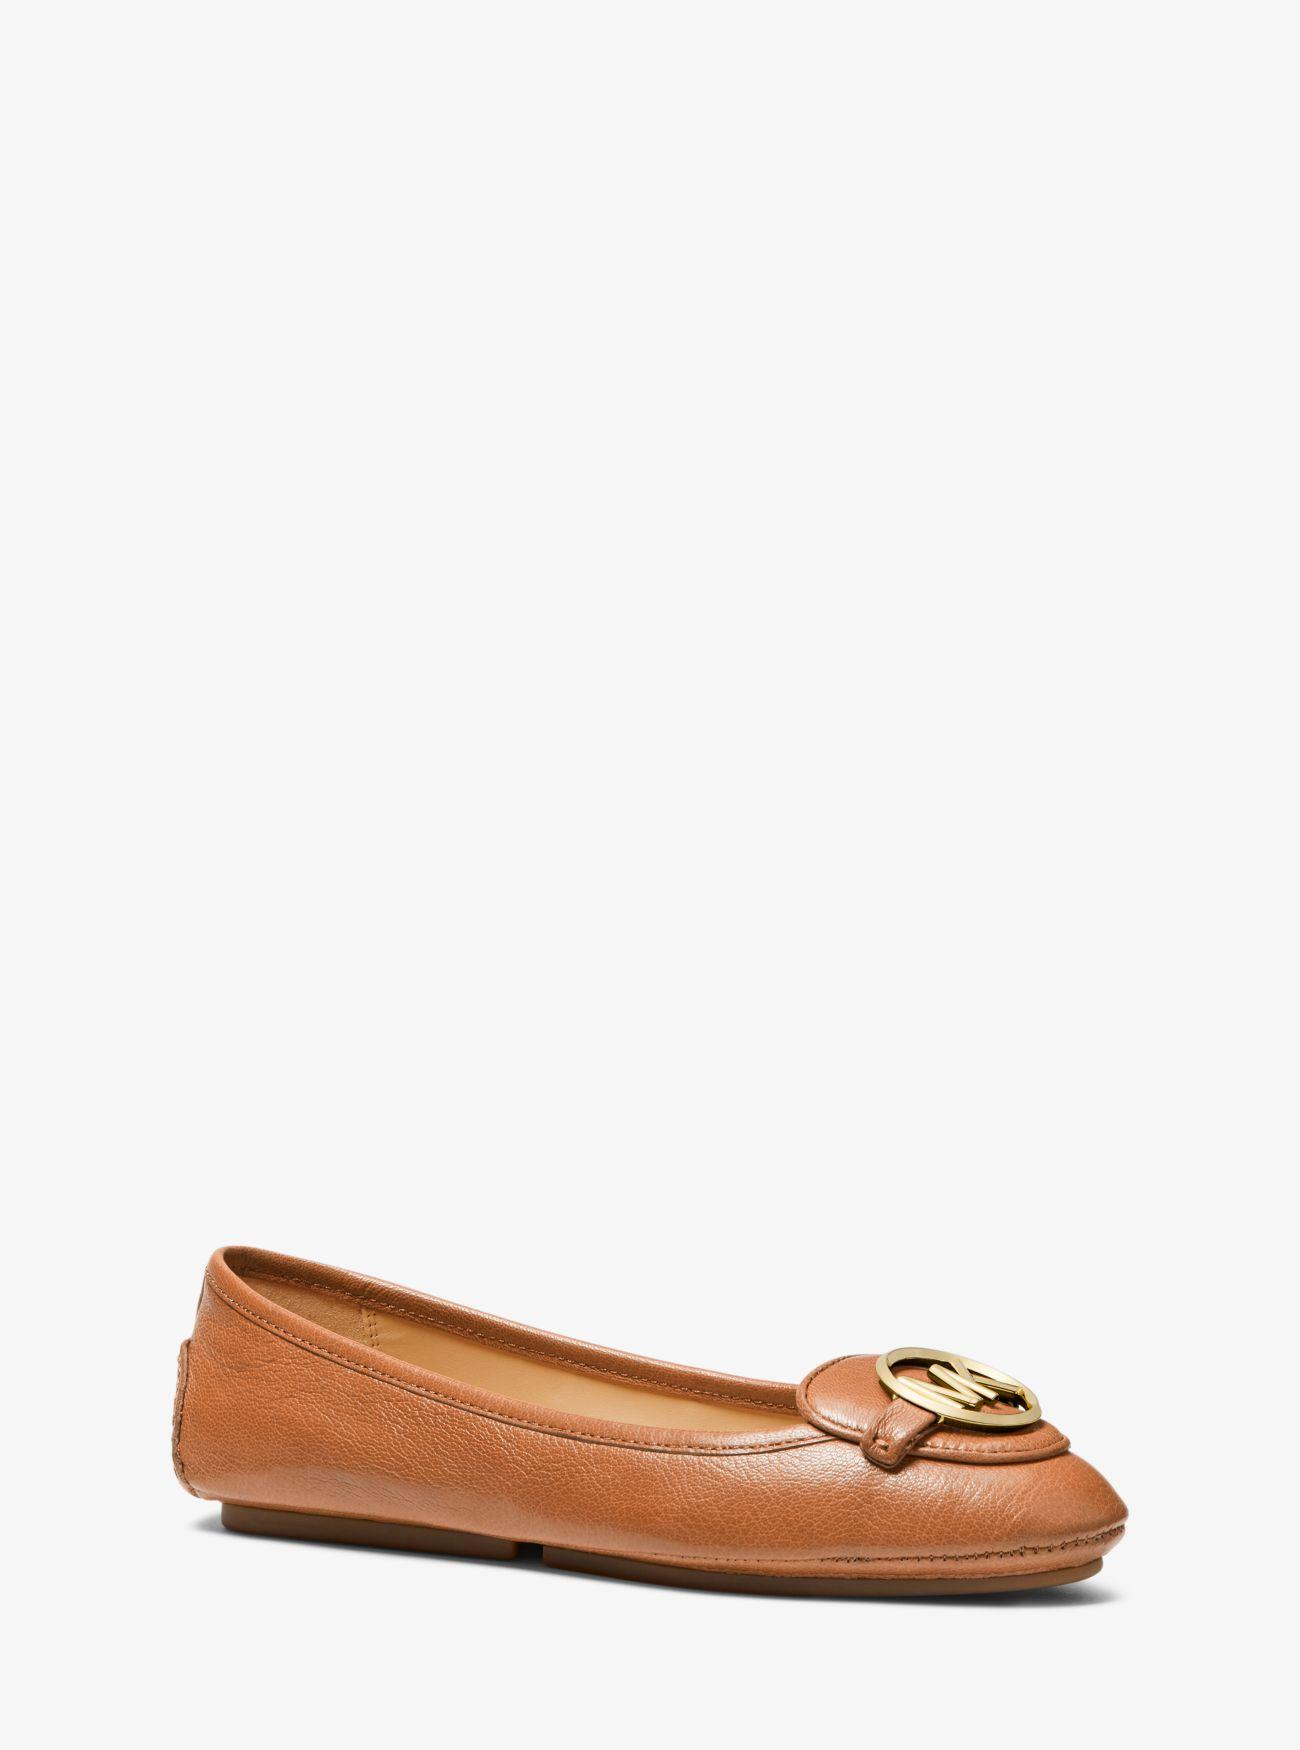 7433343a MICHAEL Michael Kors Lillie Leather Moccasin in Brown - Save 25% - Lyst